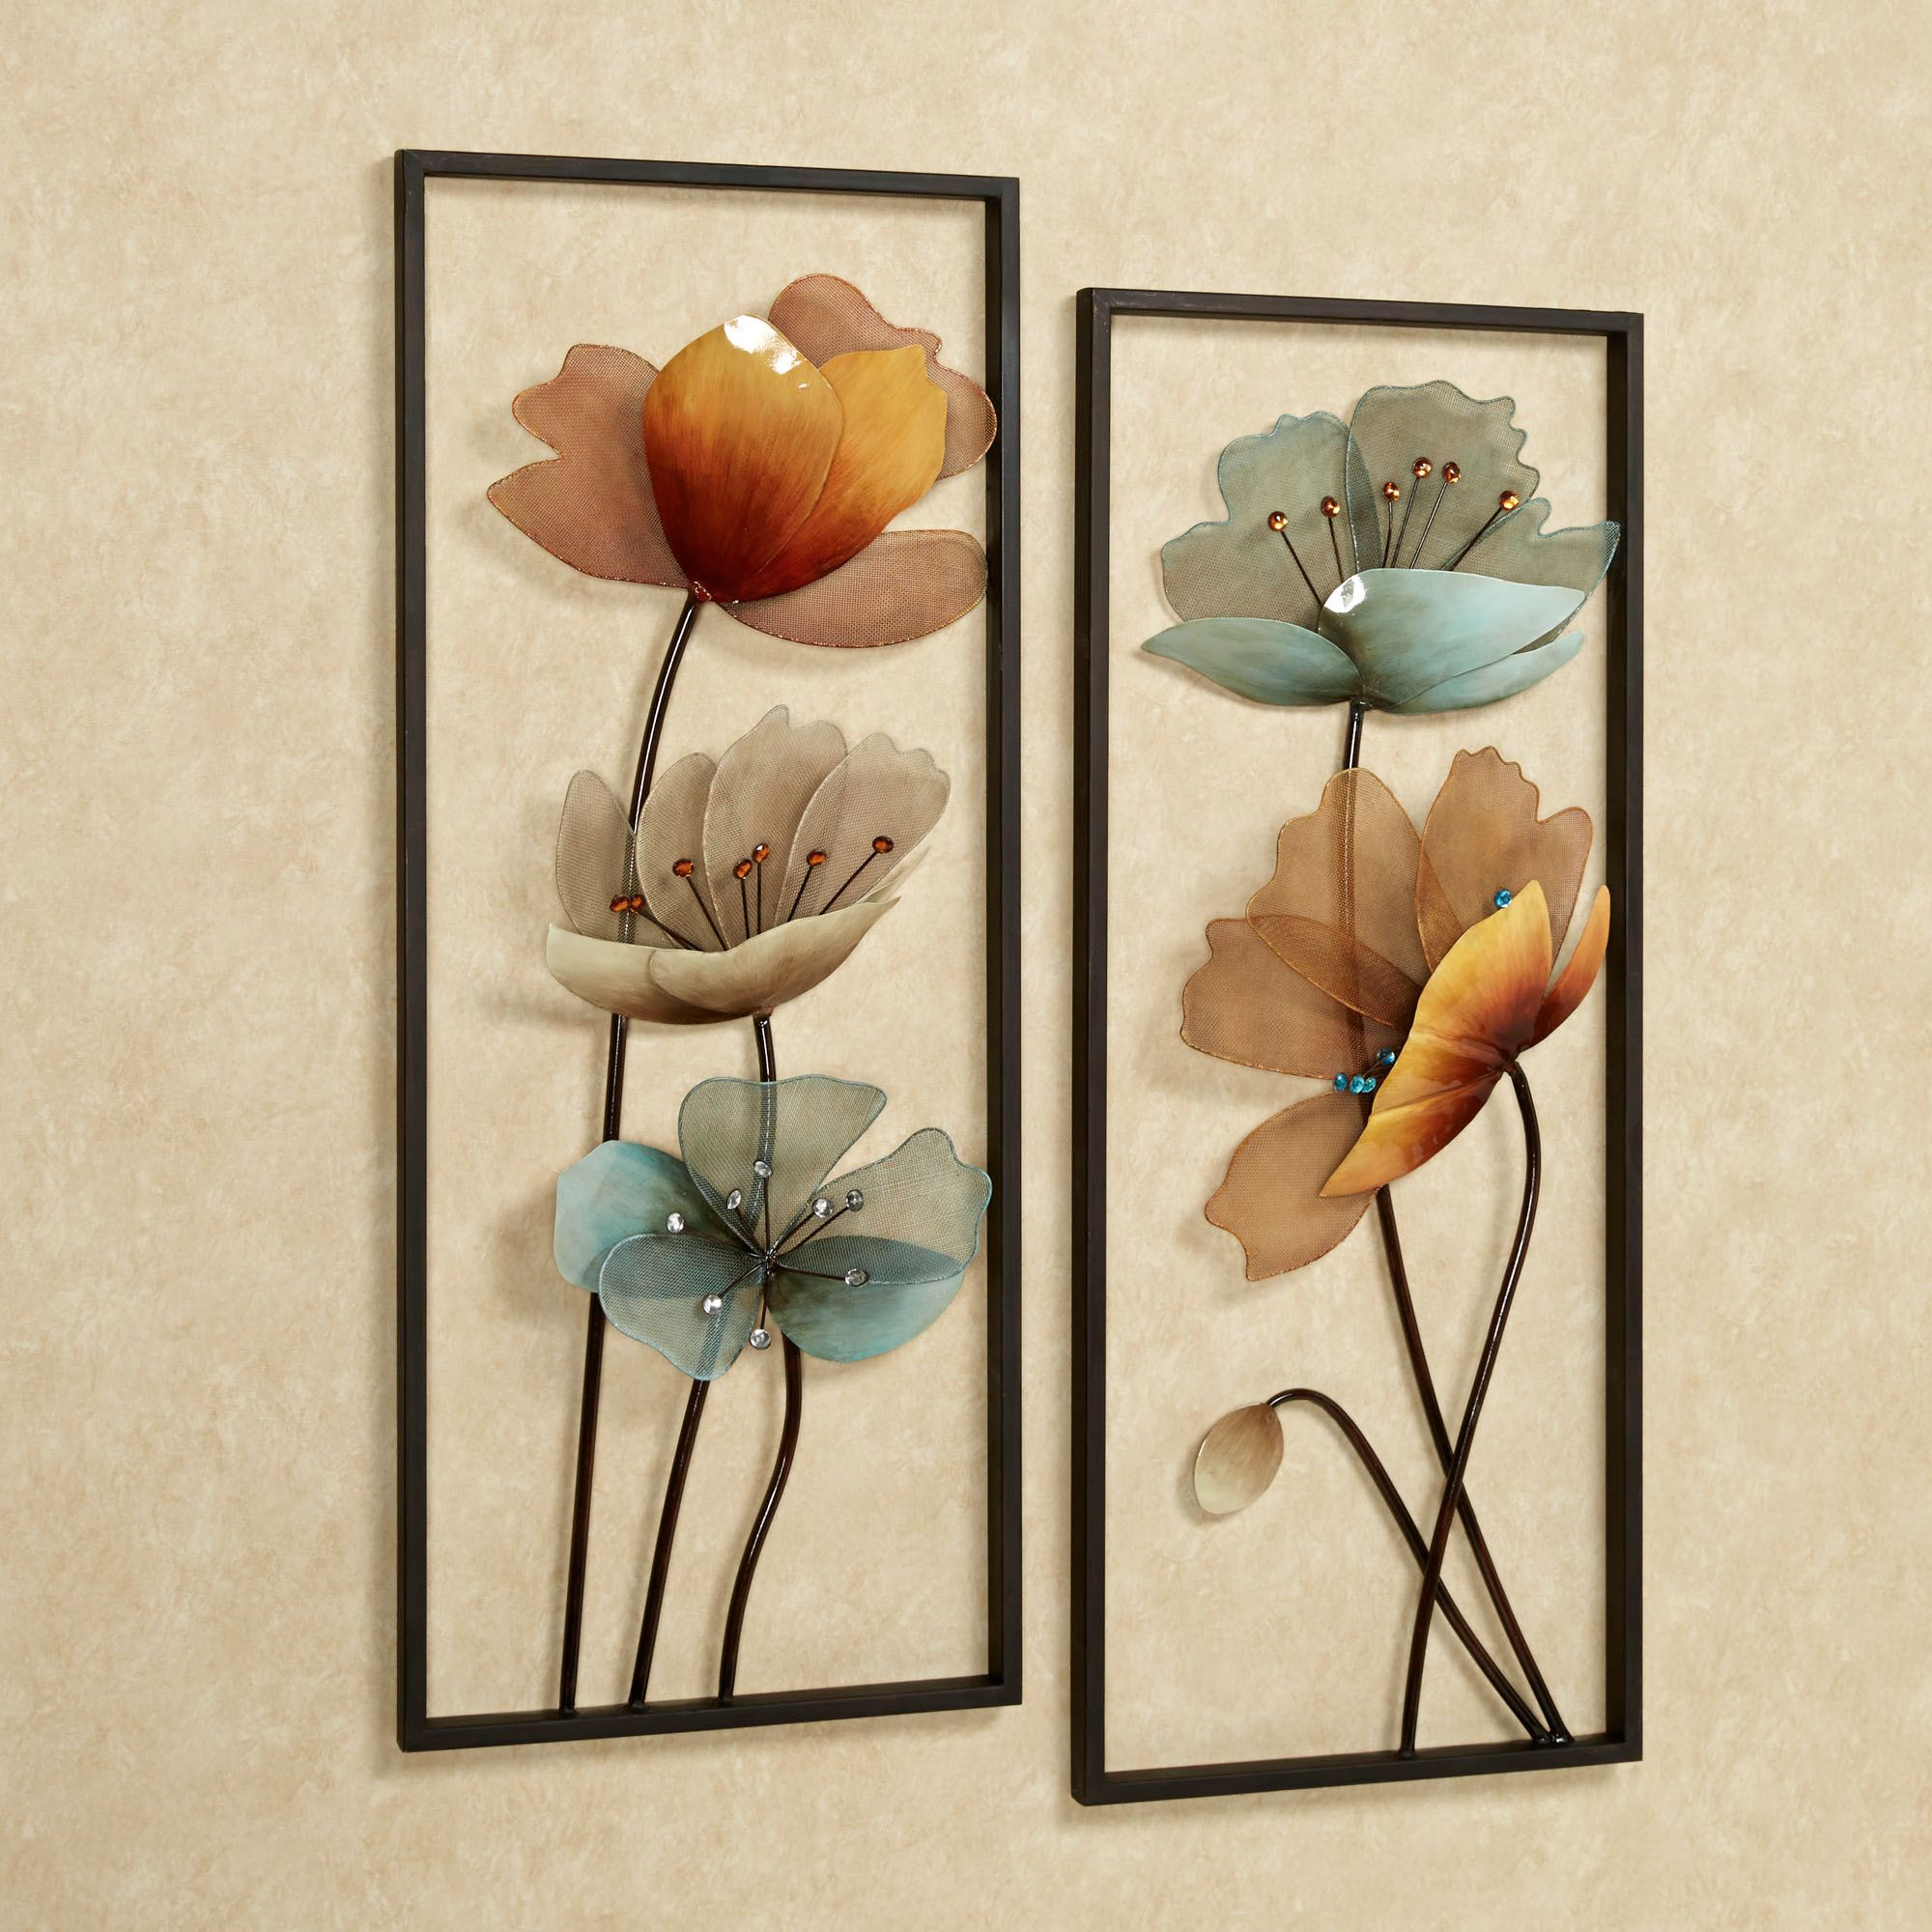 Wood And Metal Wall Art decorative metal wall art 2 | roselawnlutheran